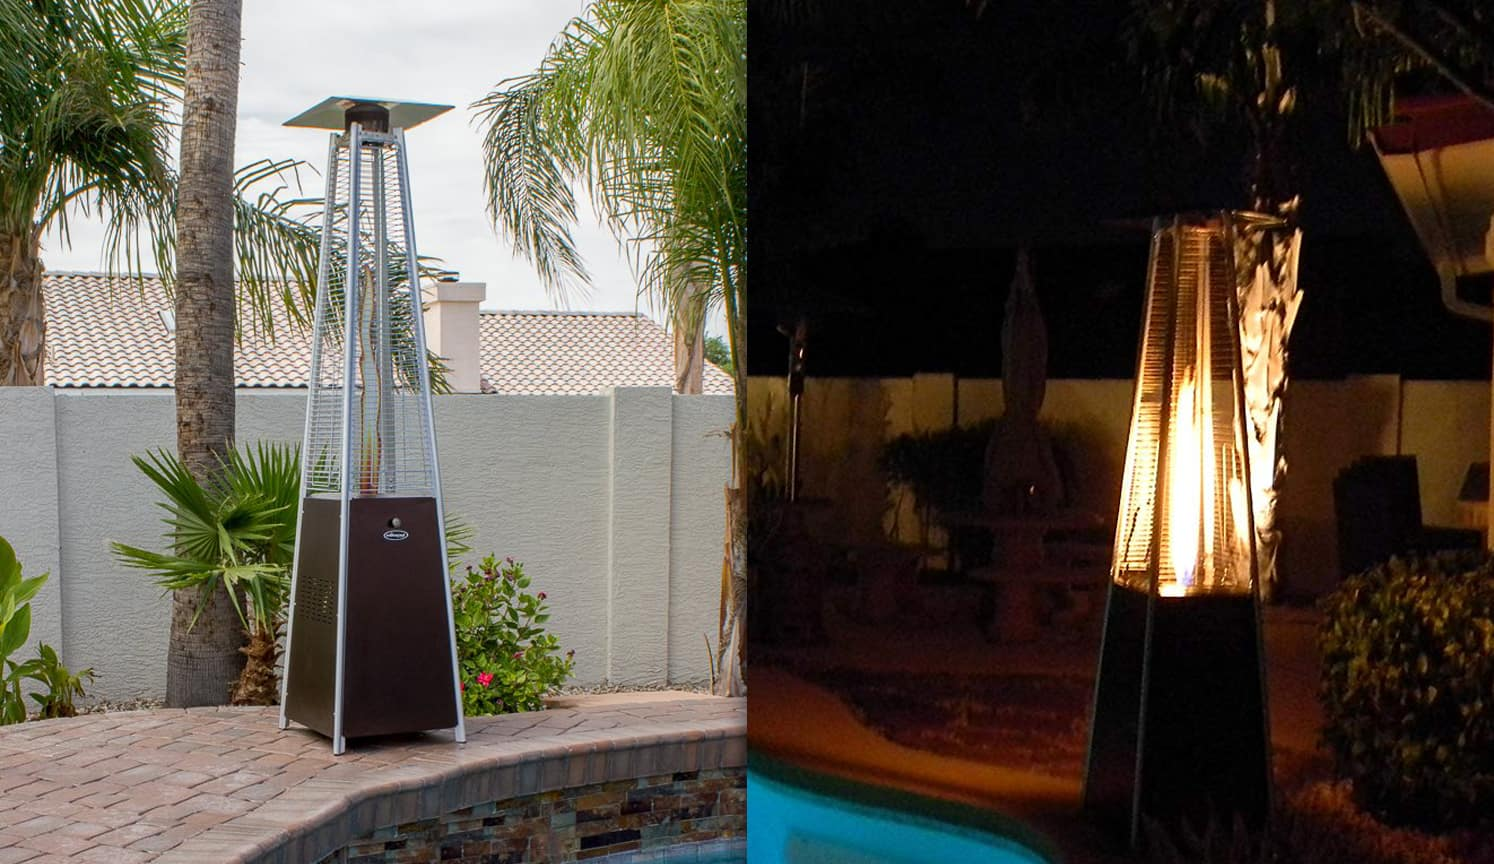 Glass Tube Patio Heater as the third related product of Propane Patio Heater